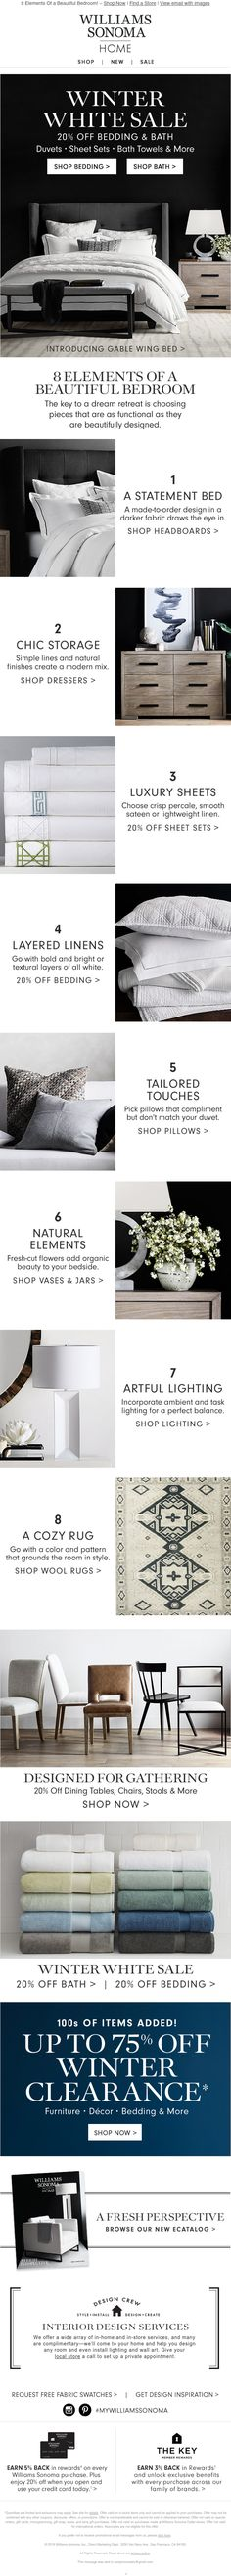 8 Elements of a Beautiful Bedroom Html Email Design, Email Web, Email Design Inspiration, Email Campaign, Email Templates, Beautiful Bedrooms, Email Marketing, Edm, Web Design